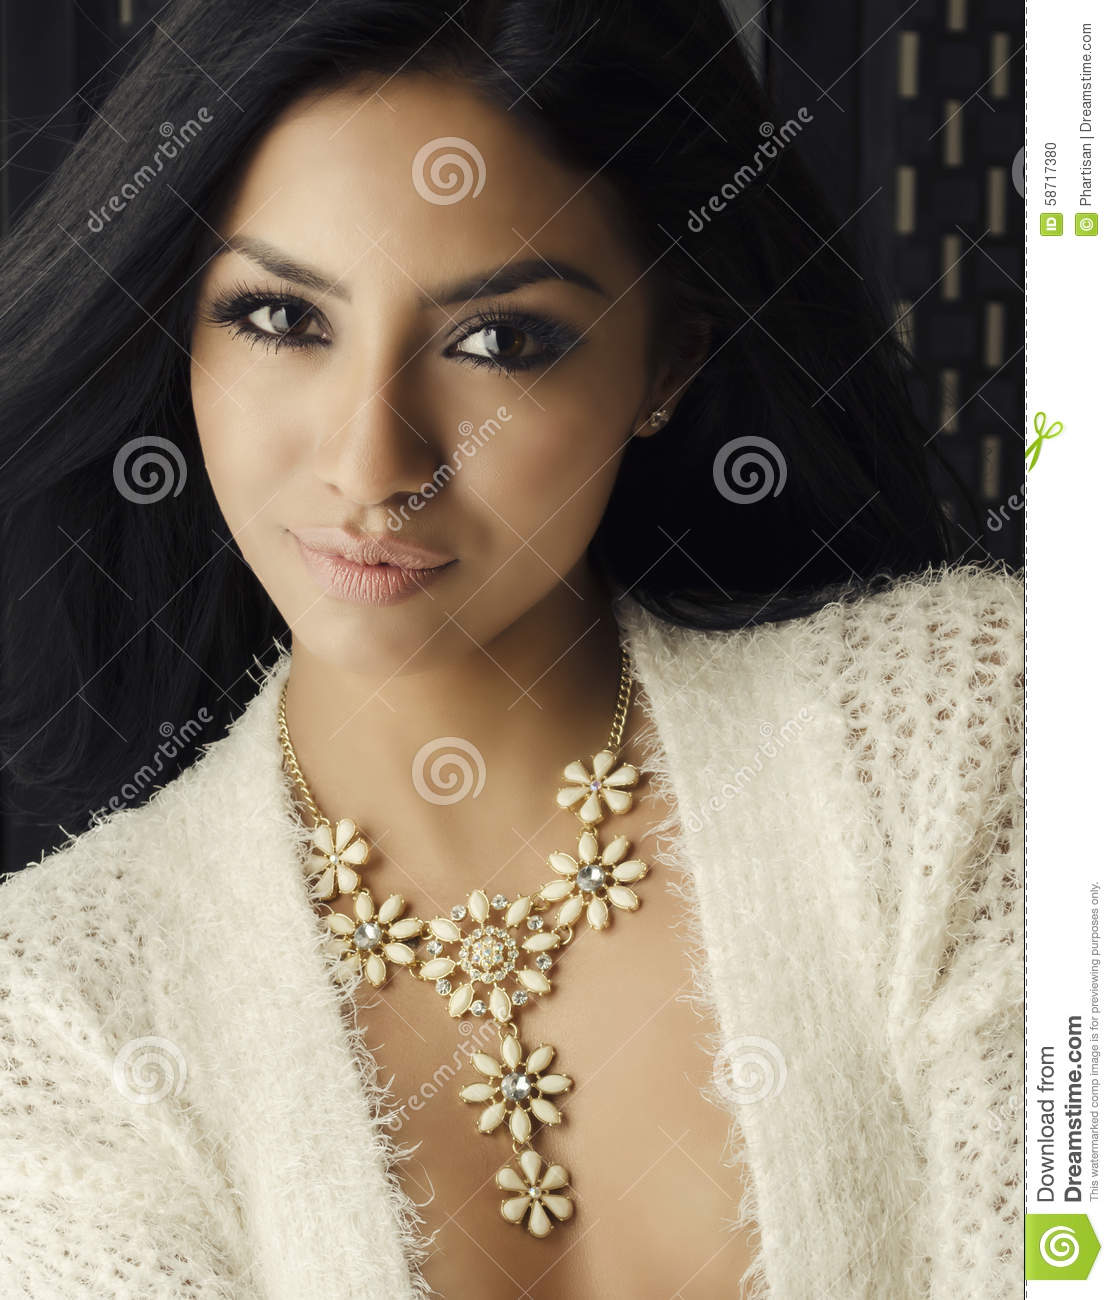 indian woman with beautiful skin and hair royalty free